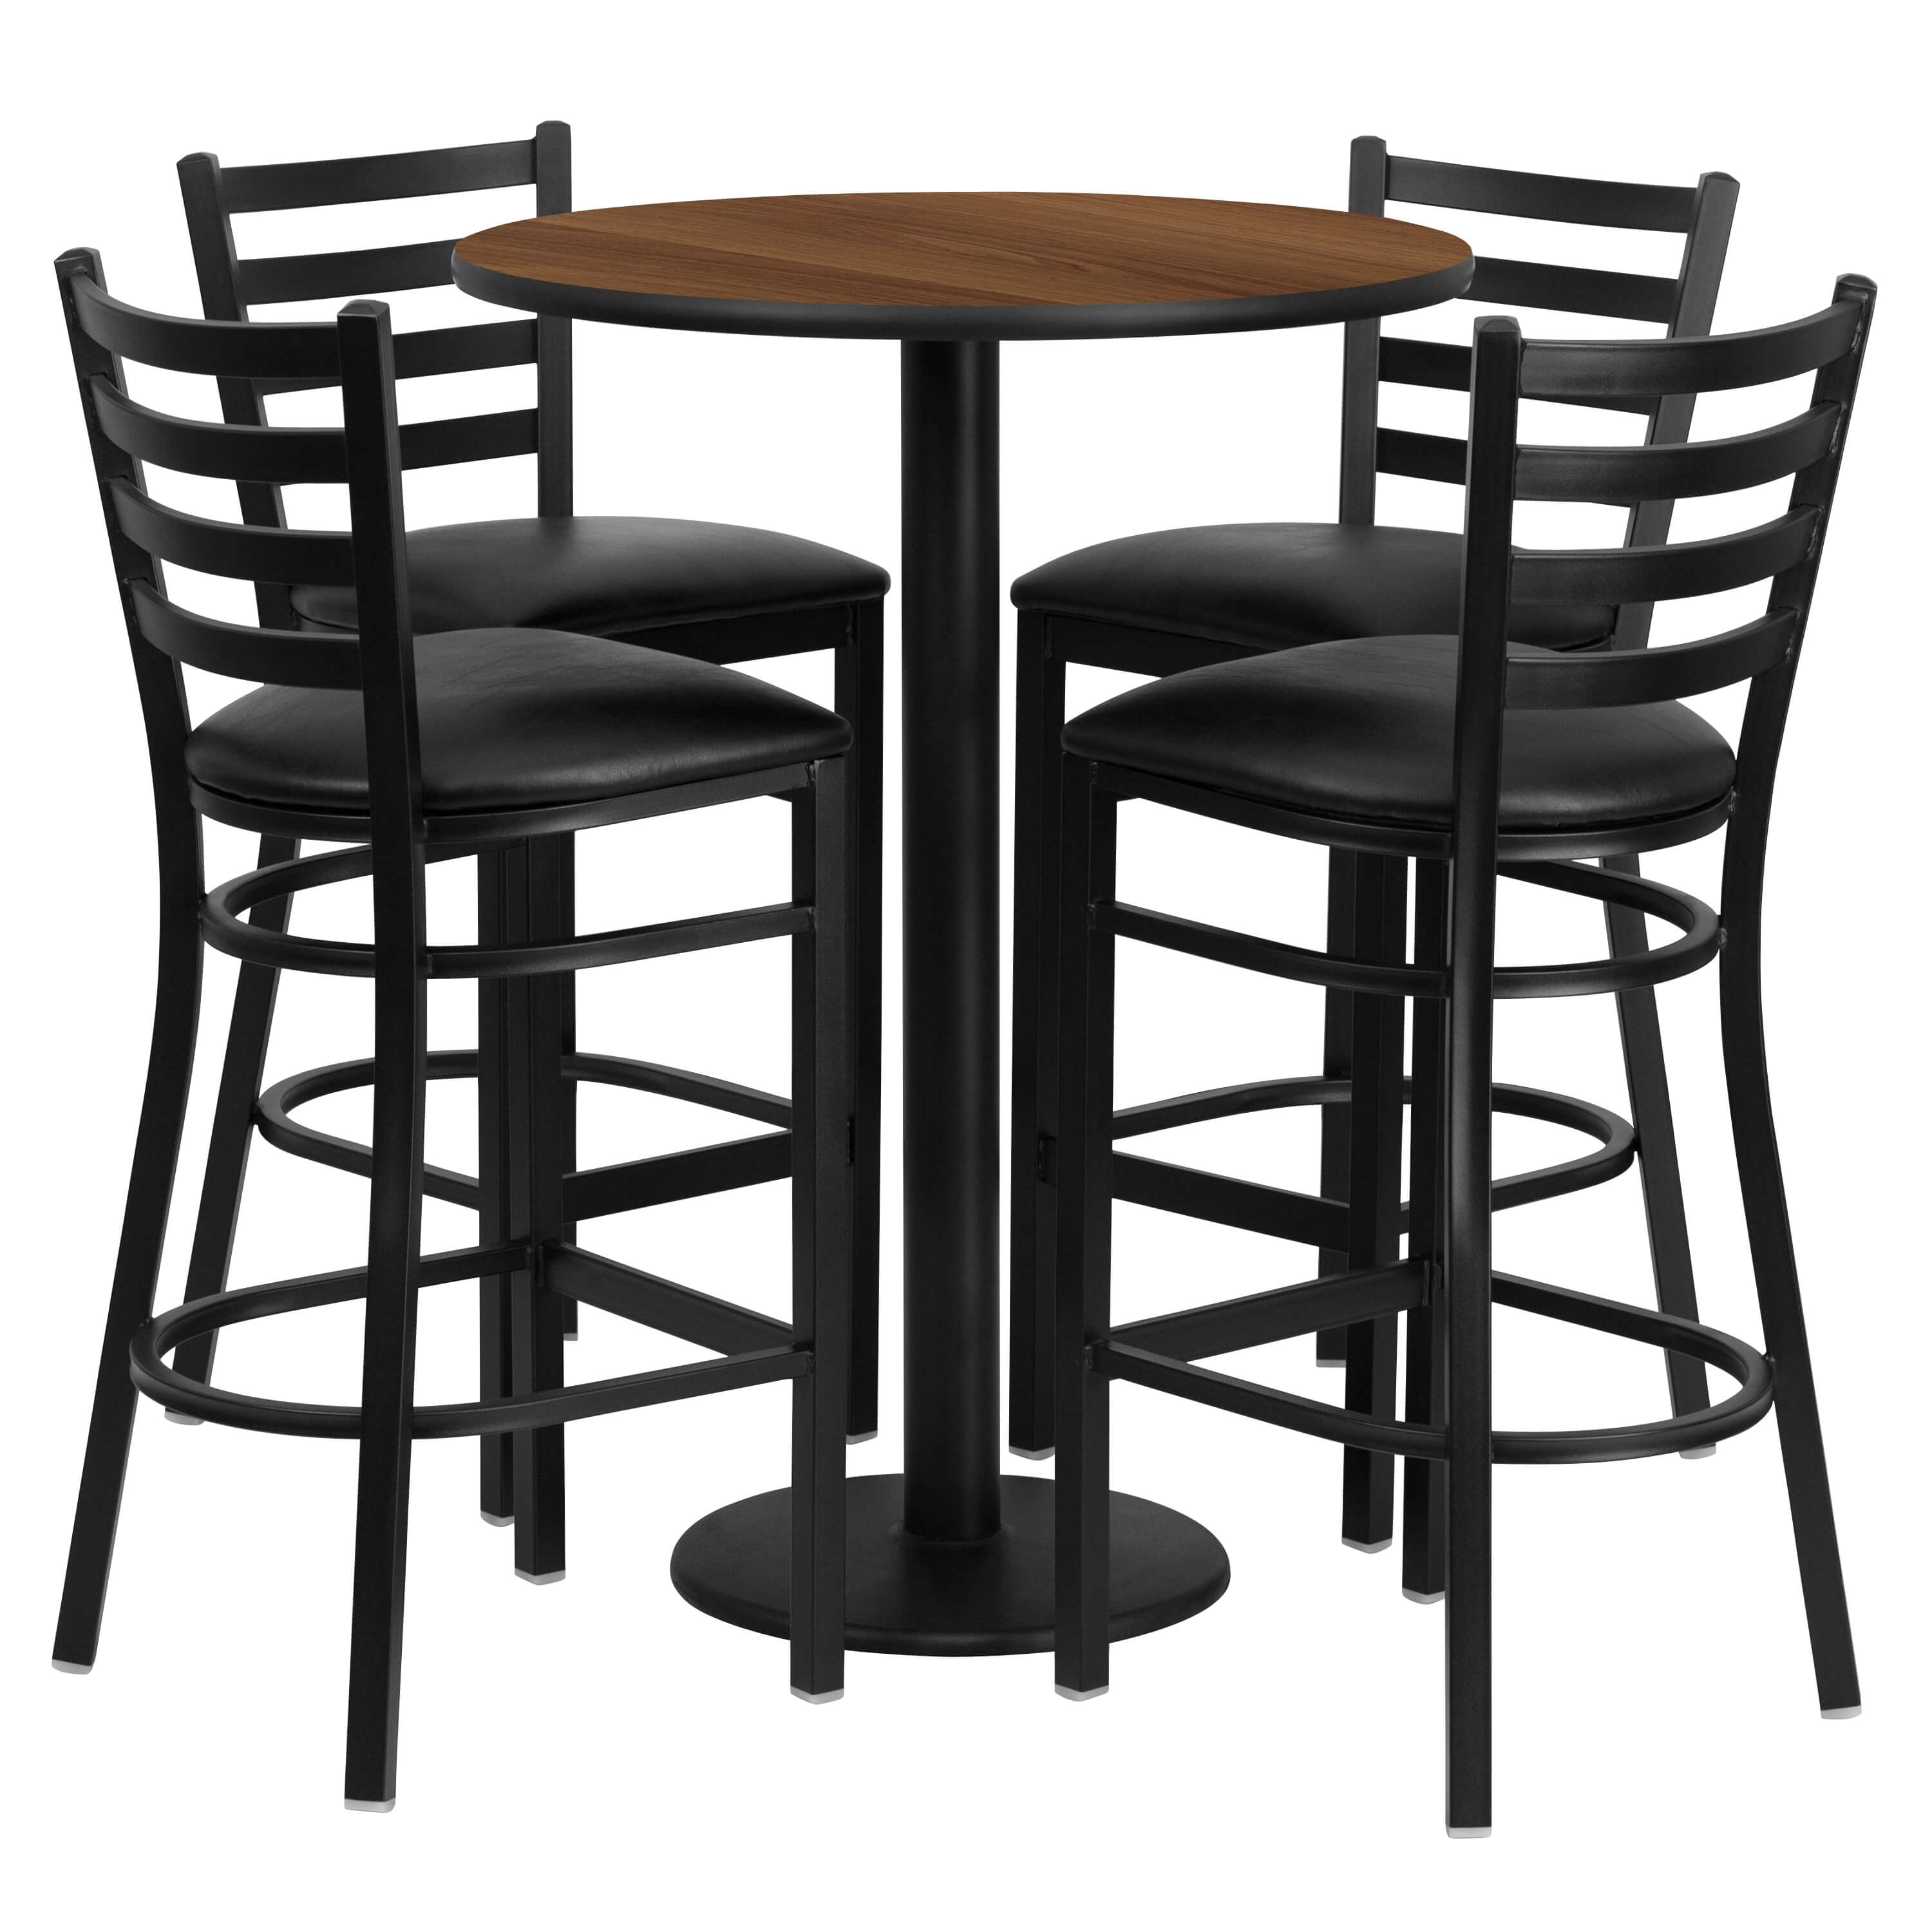 cafe-tables-and-chairs-30inch-round-pub-table-and-chairs-set.jpg